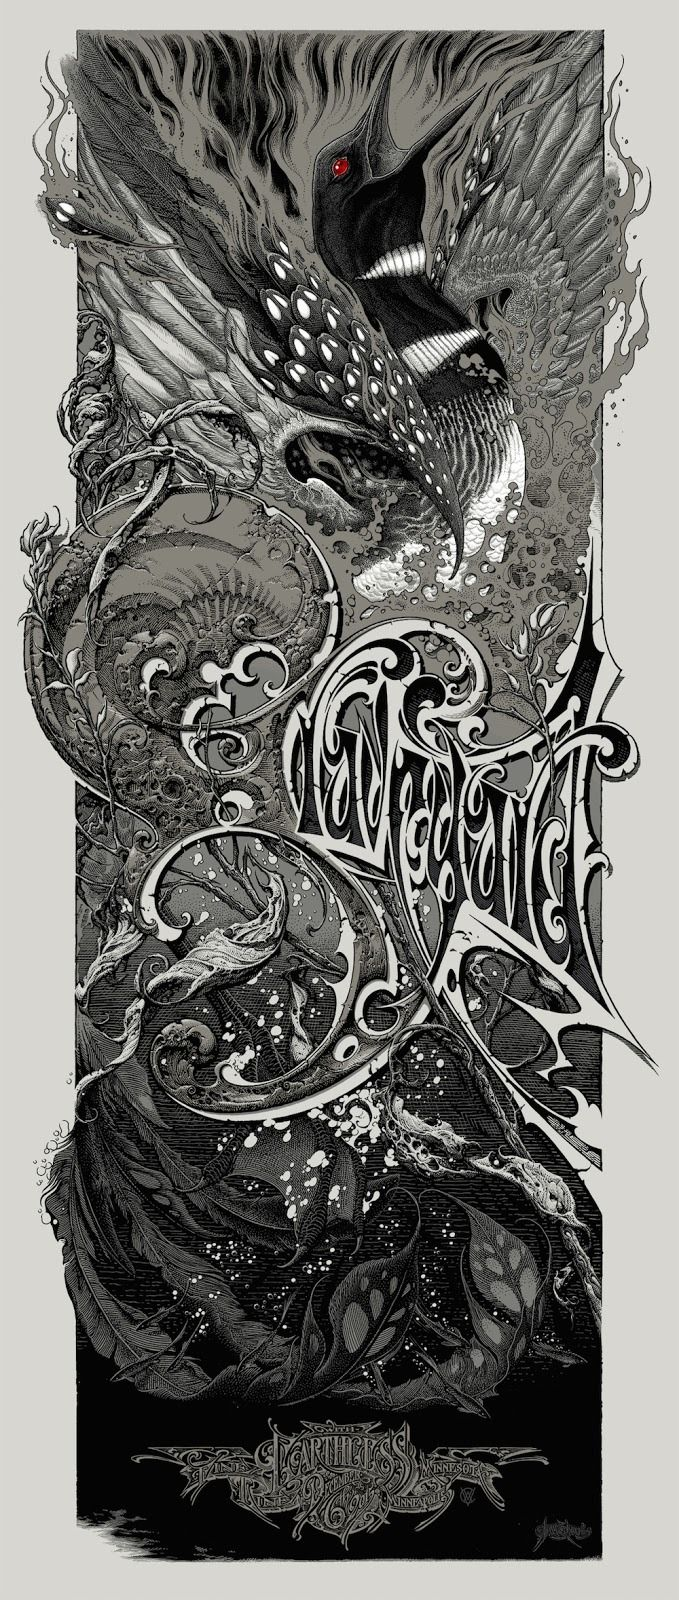 Graveyard Poster by Aaron Horkey and Brandon Holt (Onsale Info)